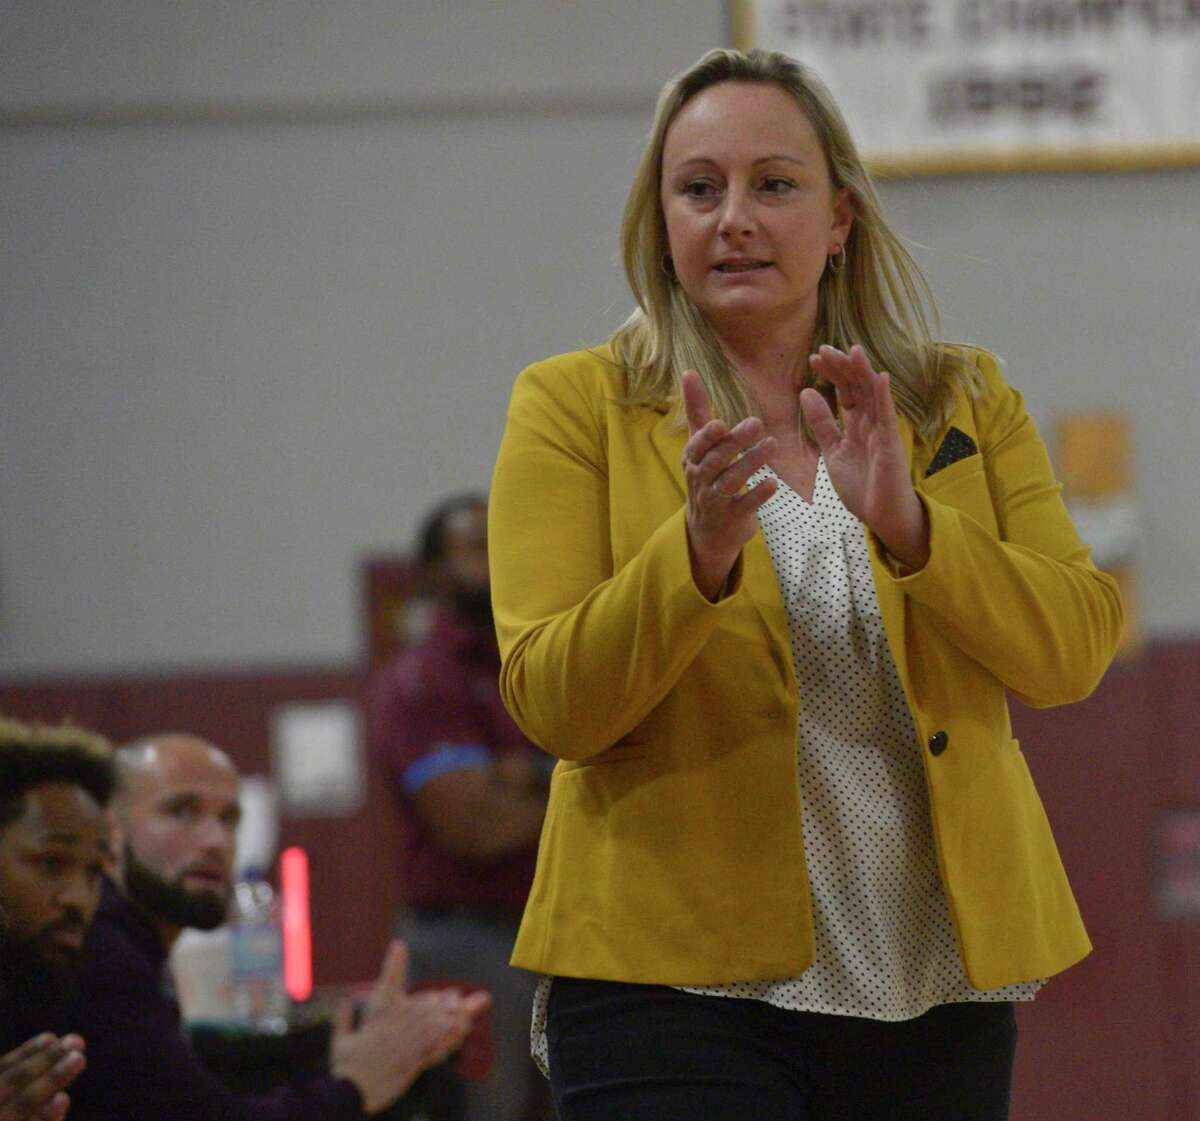 Notre Dame-Fairfield head coach Maria Conlon during a girls basketball game between Notre Dame-Fairfield and Bethel high schools, Thursday night, January 9, 2020, at Bethel High School, Bethel, Conn.